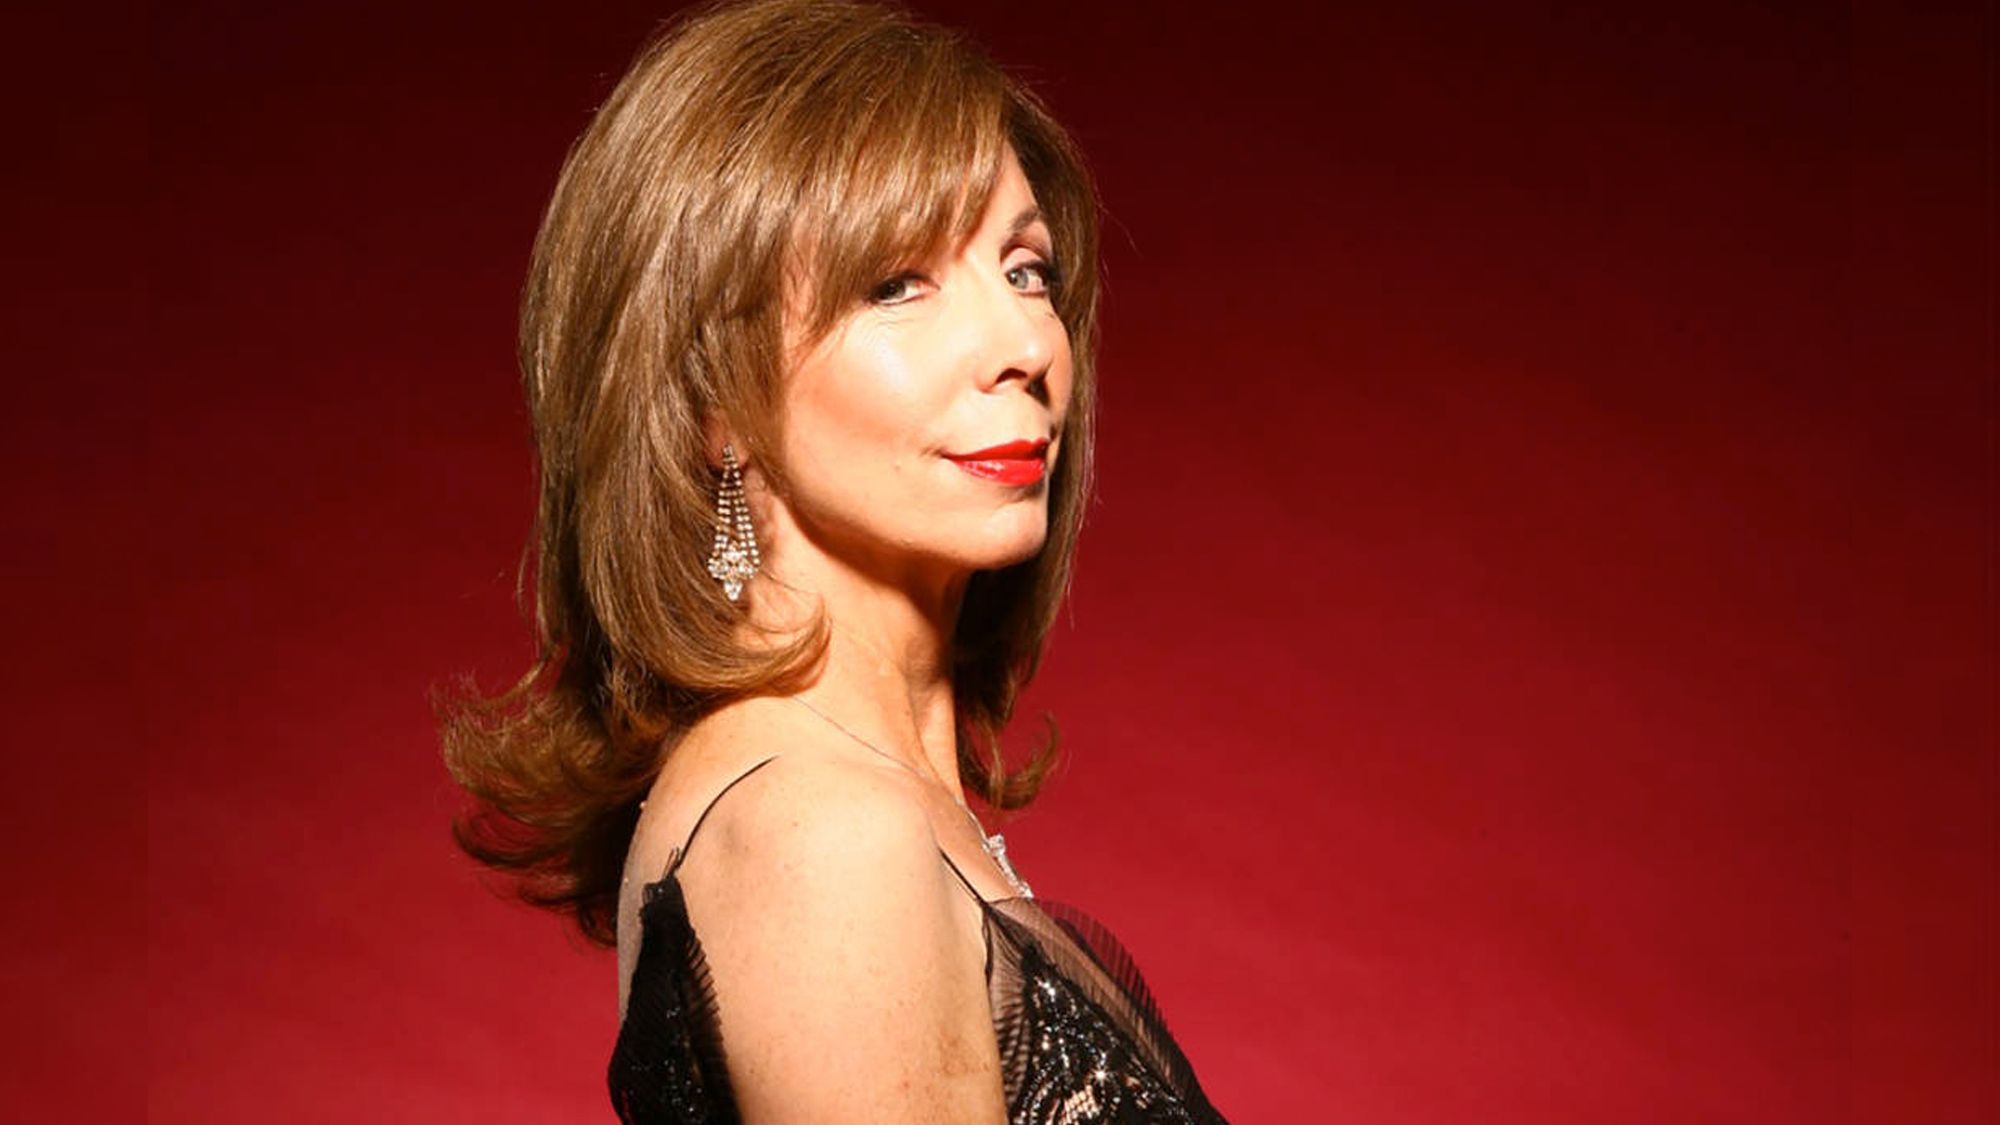 Rita Rudner nude photos 2019